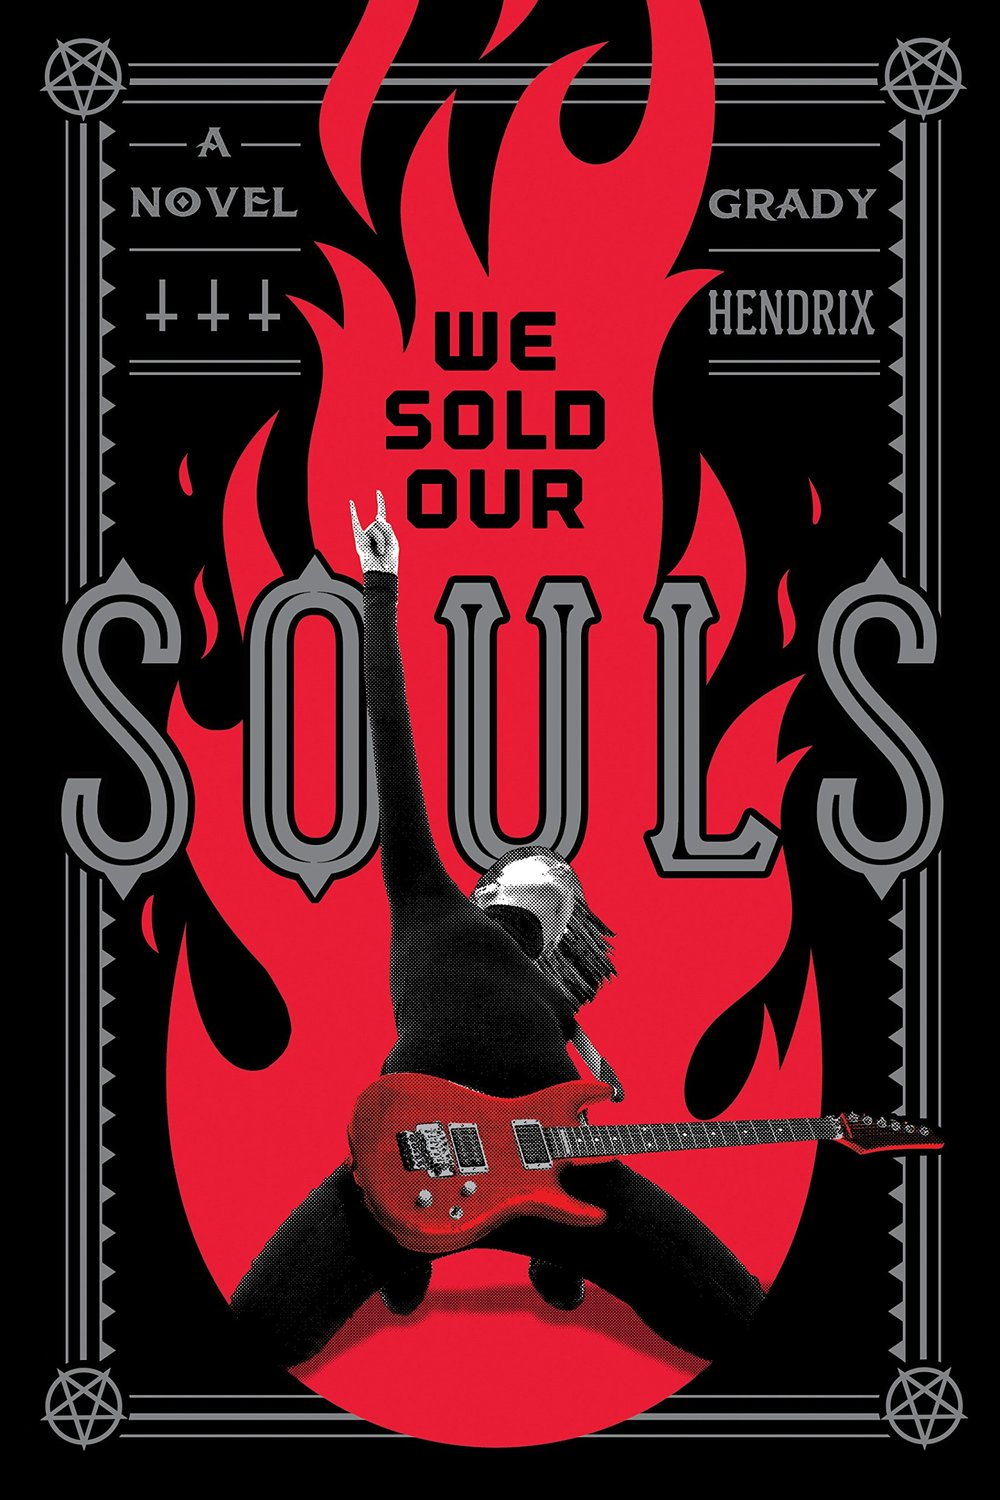 We Sold Our Souls_Grady Hendrix.jpg